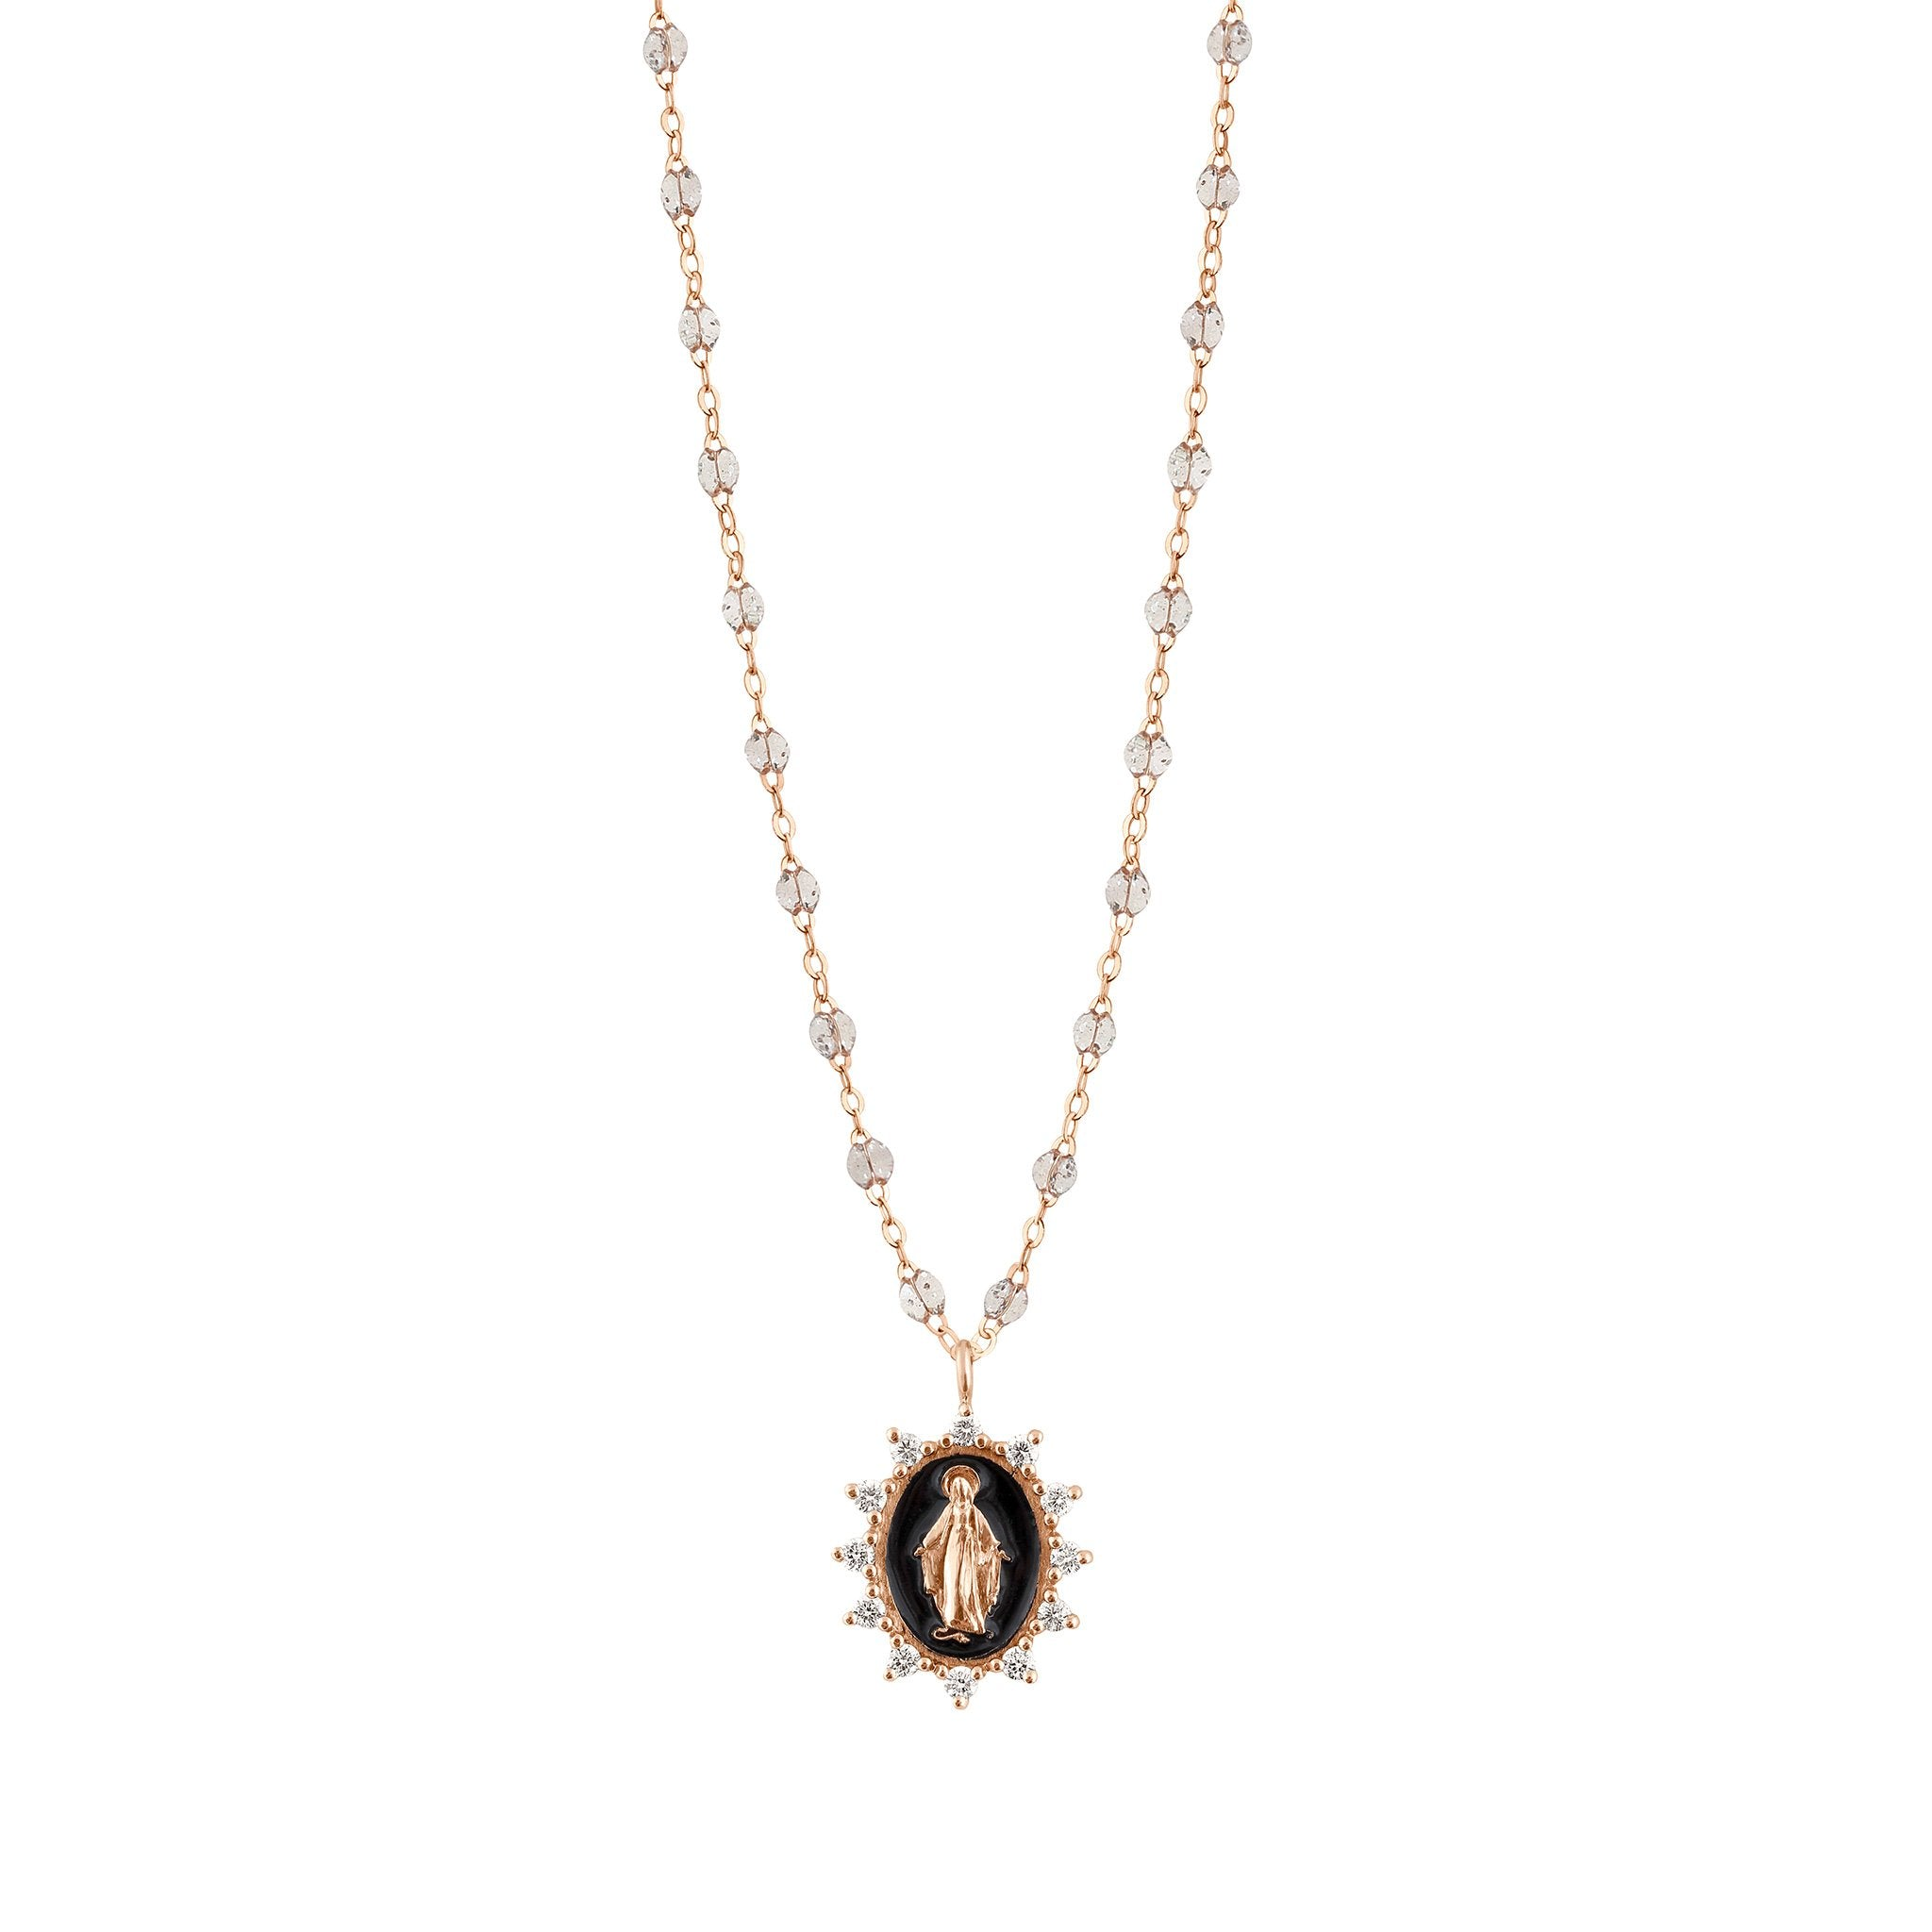 Gigi Clozeau - Madone Supreme sparkle Black diamond necklace, Rose Gold, 19.7""